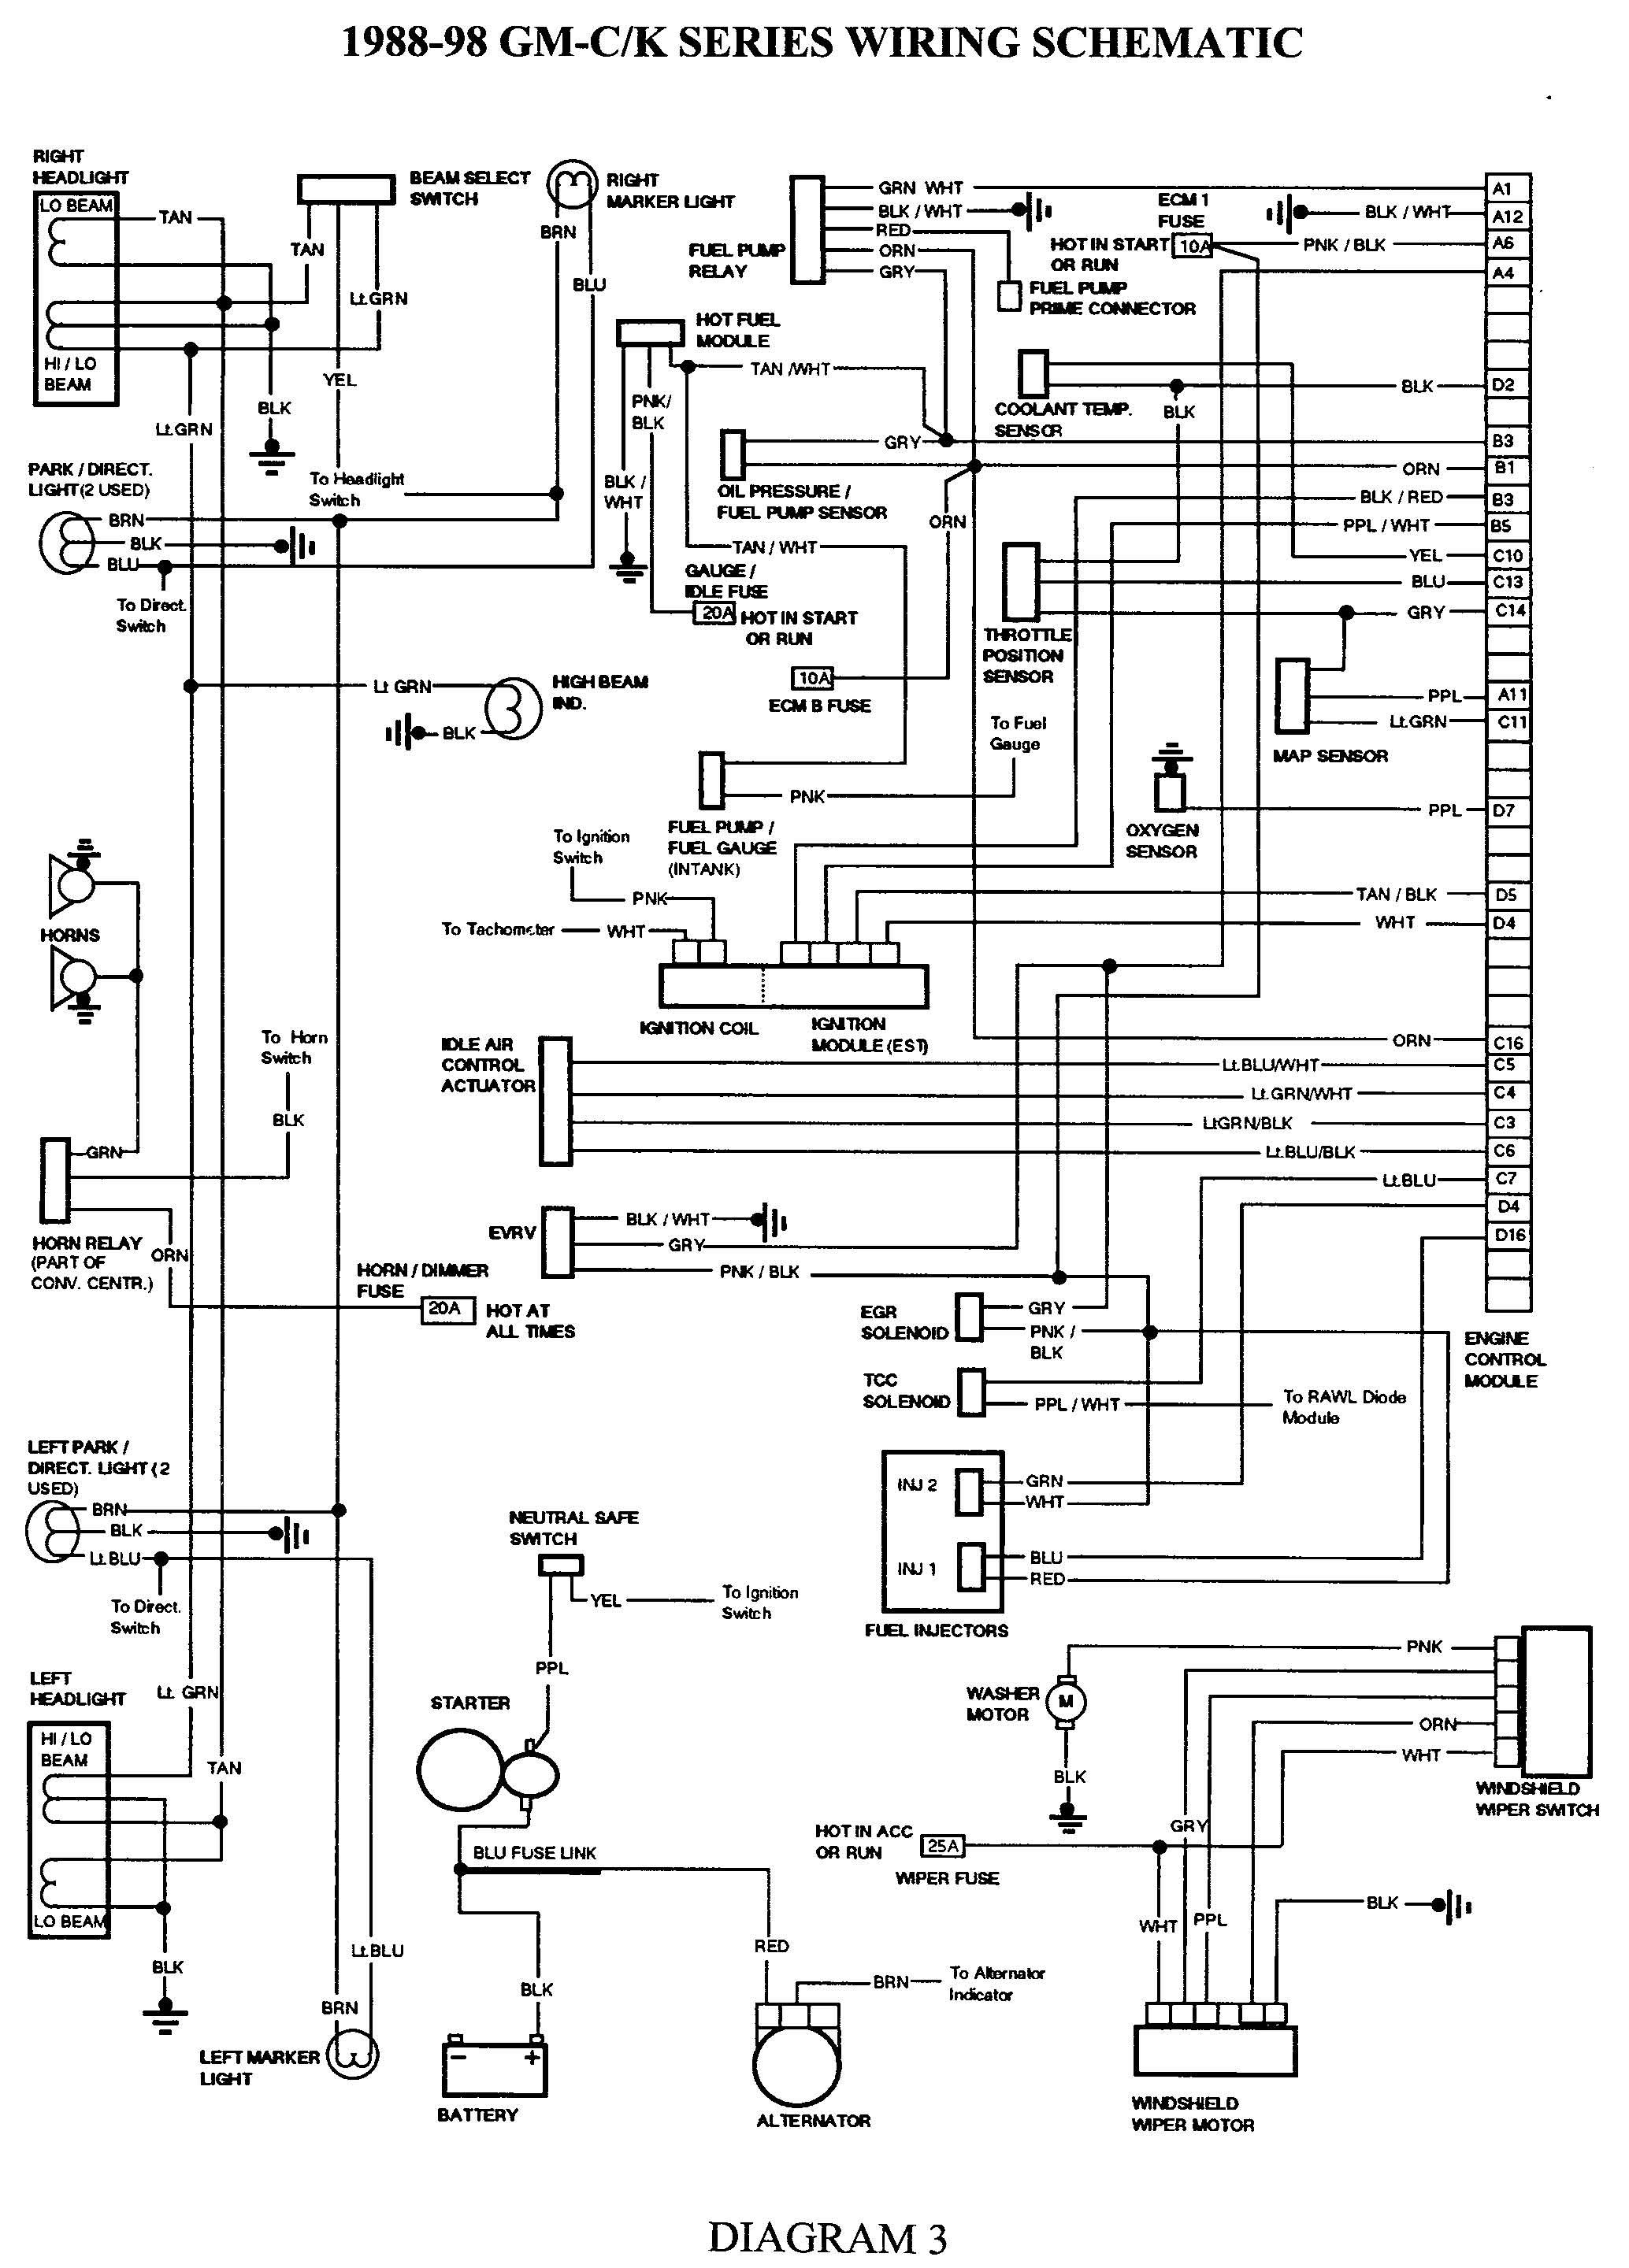 c4500 wiring diagram detailed schematics diagram 88 camaro air conditioning gmc t7500 wiring diagrams detailed schematics diagram gmc c4500 headlight wiring c4500 wiring diagram